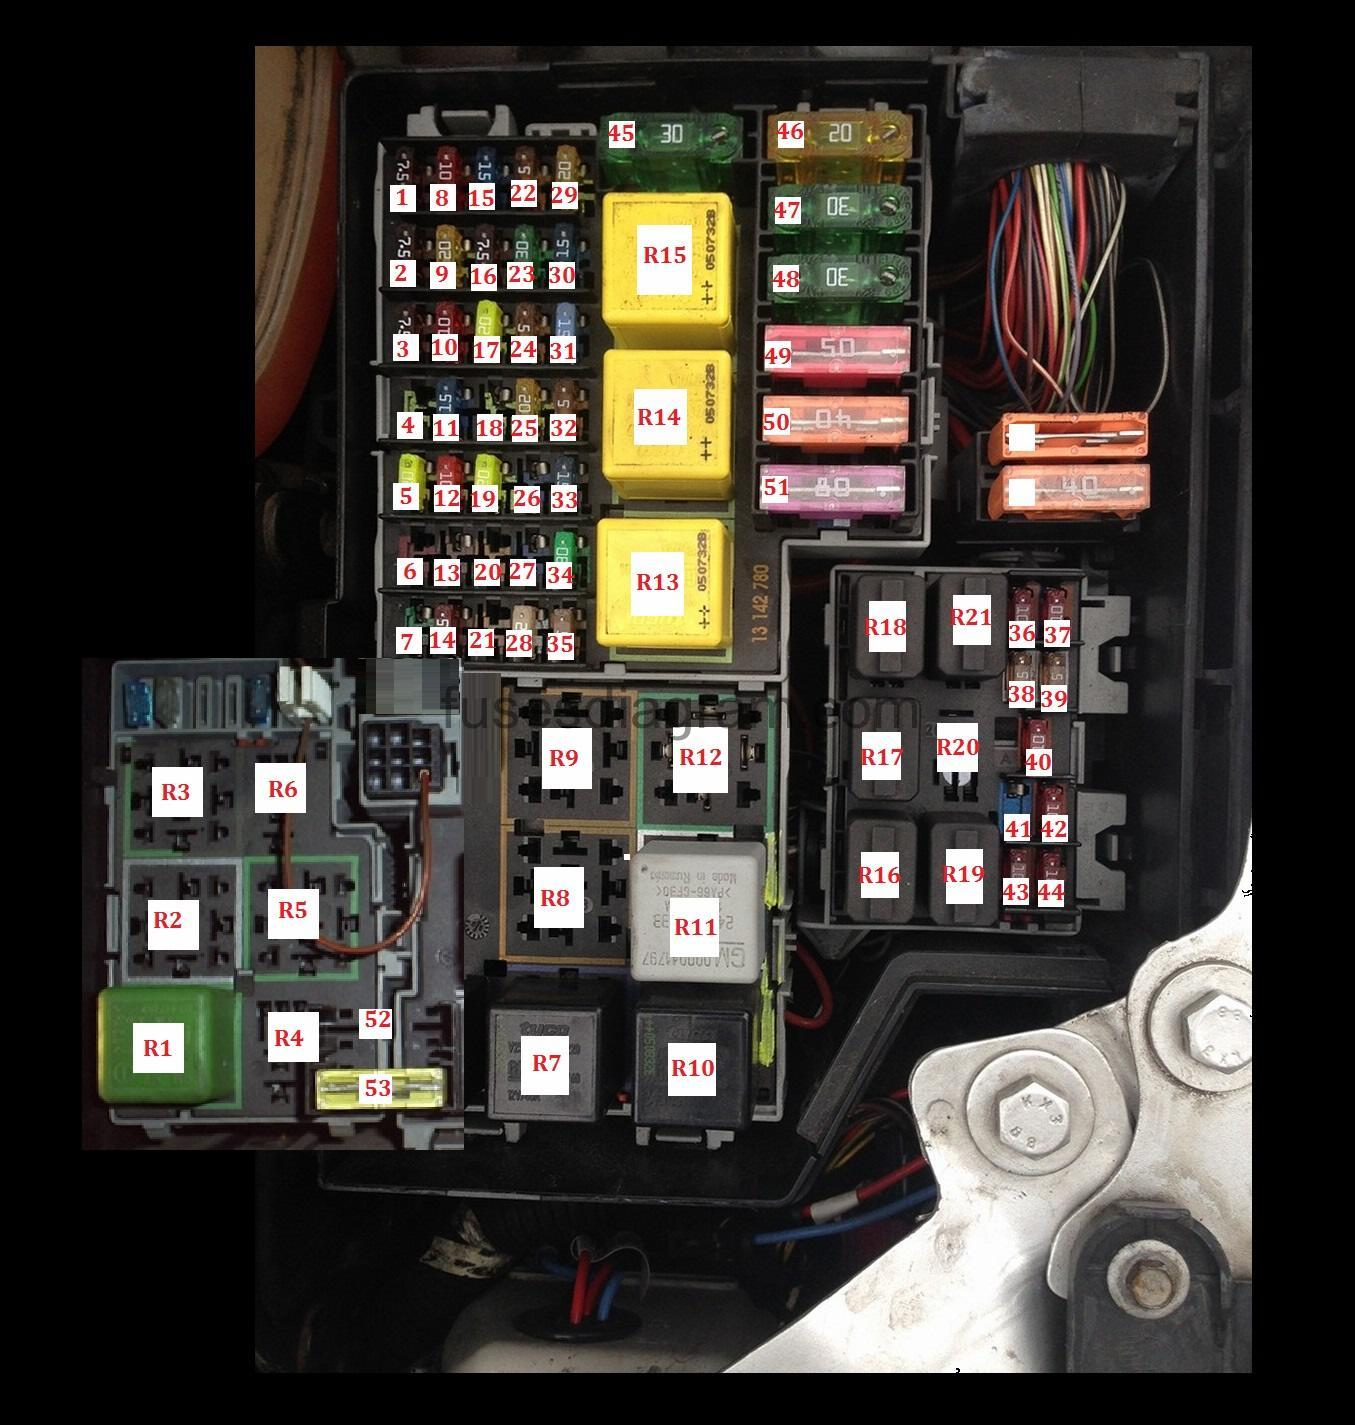 fuse box opel vauxhall corsa c 2007 r6 fuse box location yamaha r6 fuse box  location